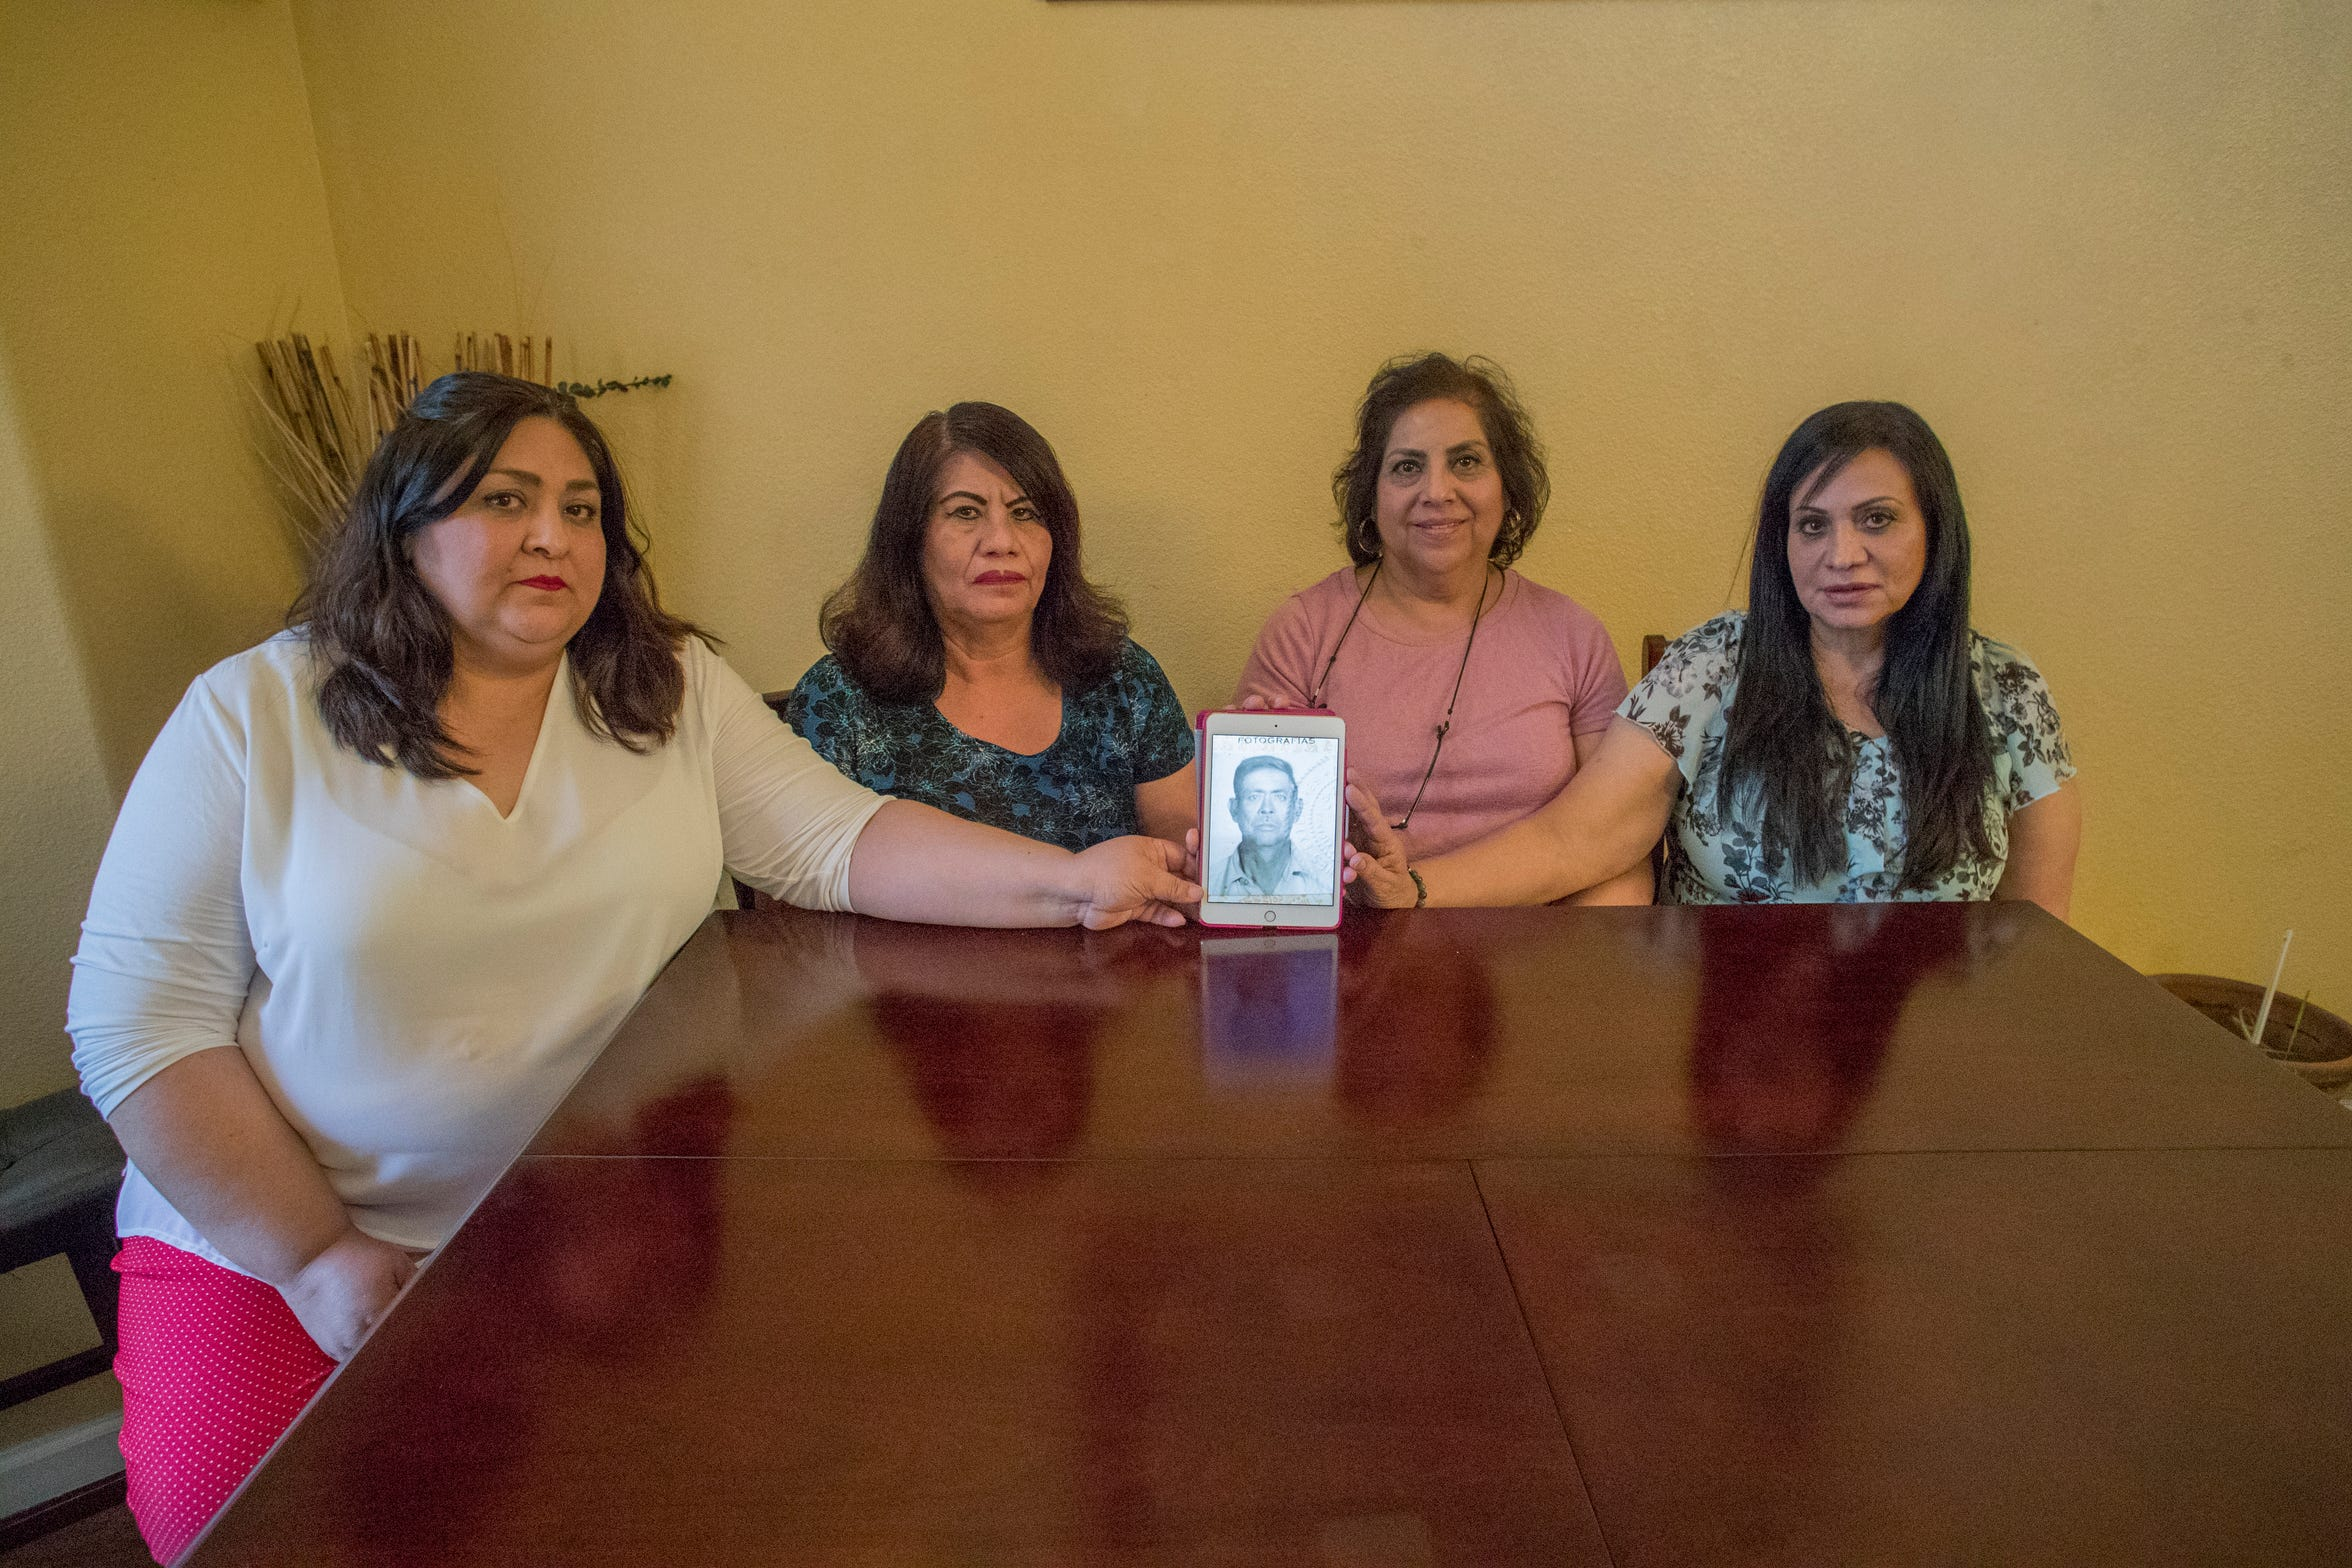 From left, sisters, Yoana Barraza, Lucia Cardenas, Catalina Cesario and Maria Cardenas hold a photo on an iPad of their father, Librado Cardenas Zazueta, who died along with 18 others in an accident aboard a farmworker bus en route to Blythe on January 15, 1974. The sisters now live in California.